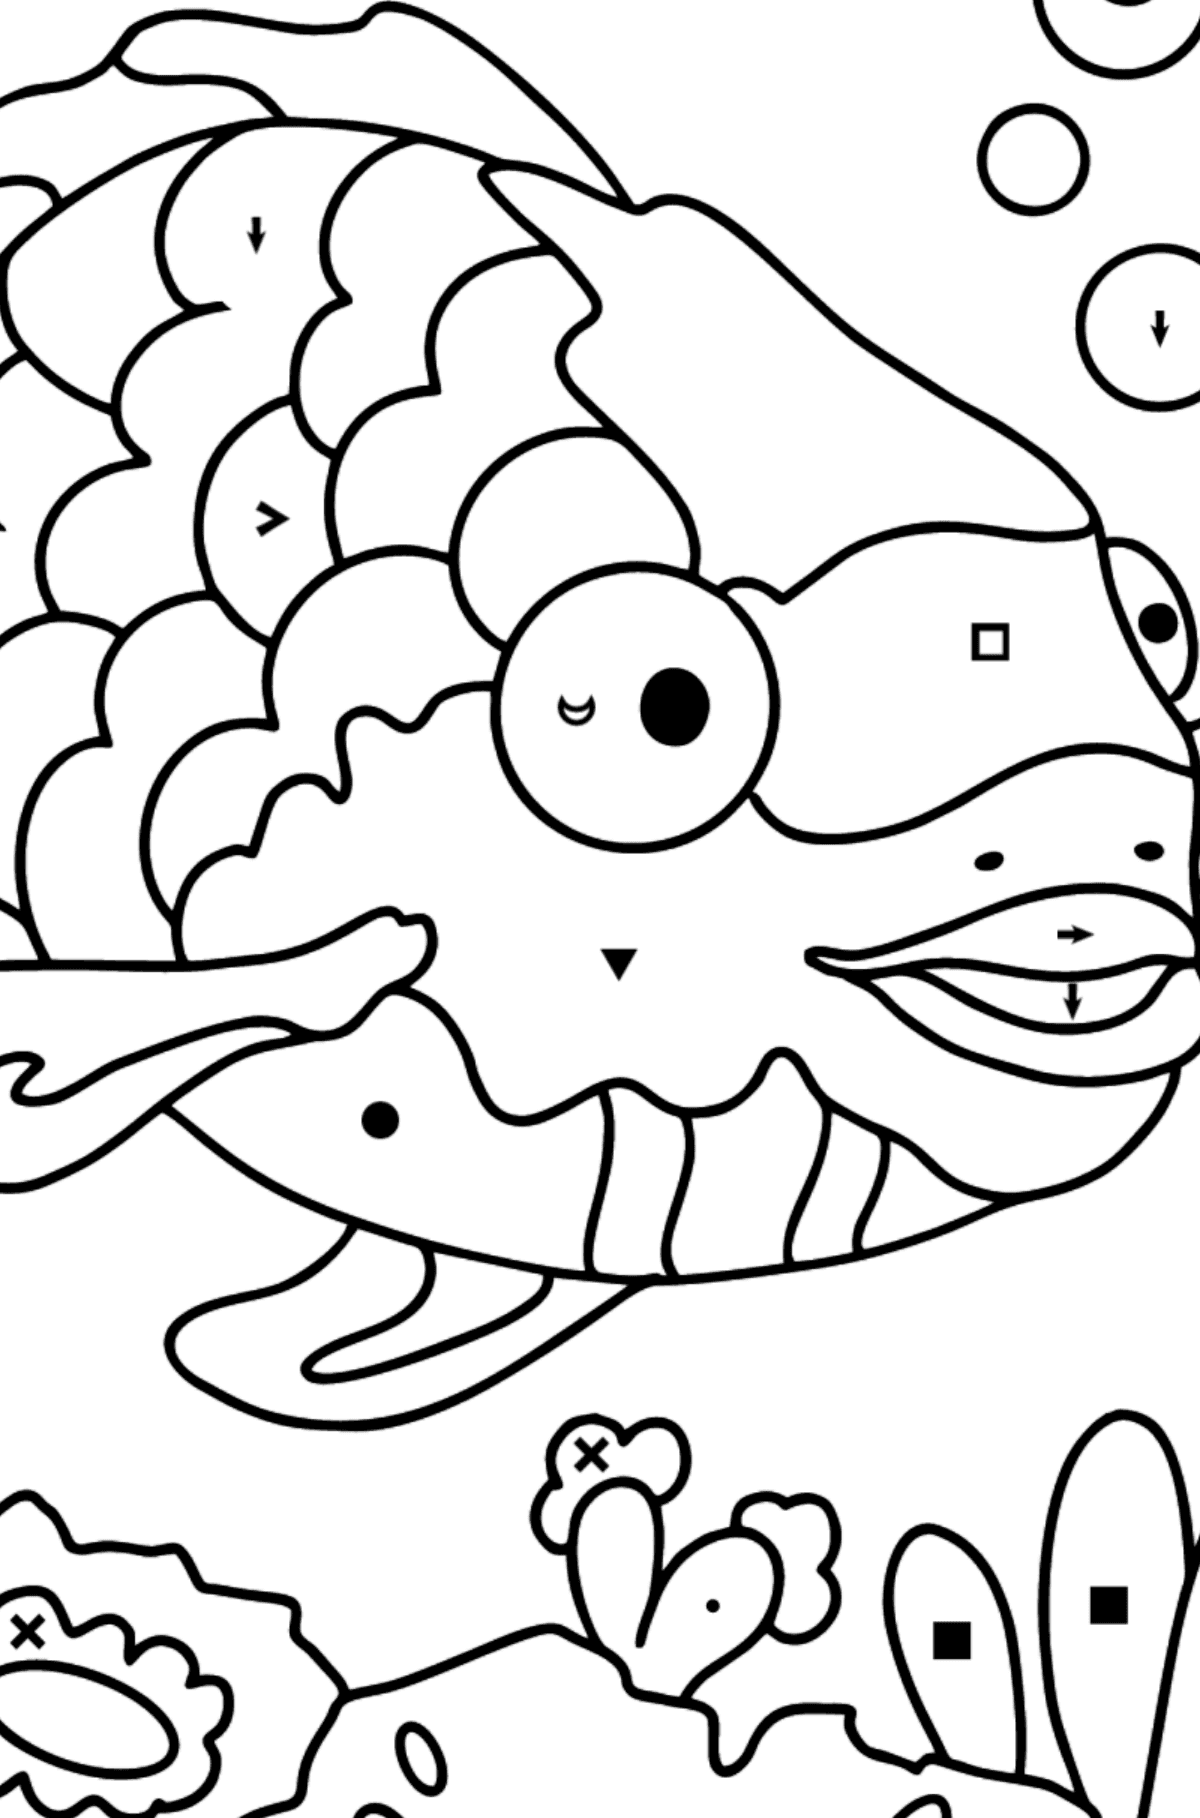 Coloring Page - A Fish with Beautiful Scales - Coloring by Symbols for Kids